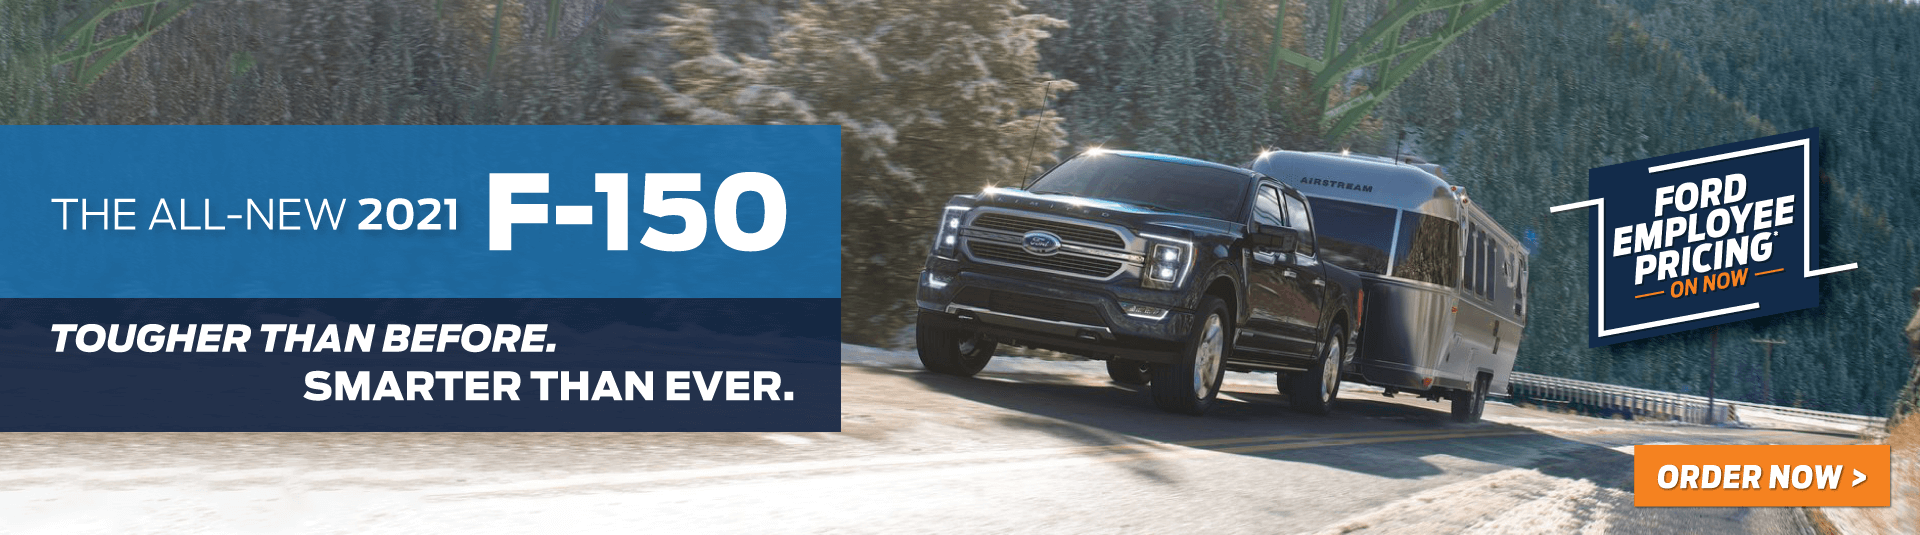 Bayfield_Ford_Barrie_Employee_is_on_Pricing-2021_F-150